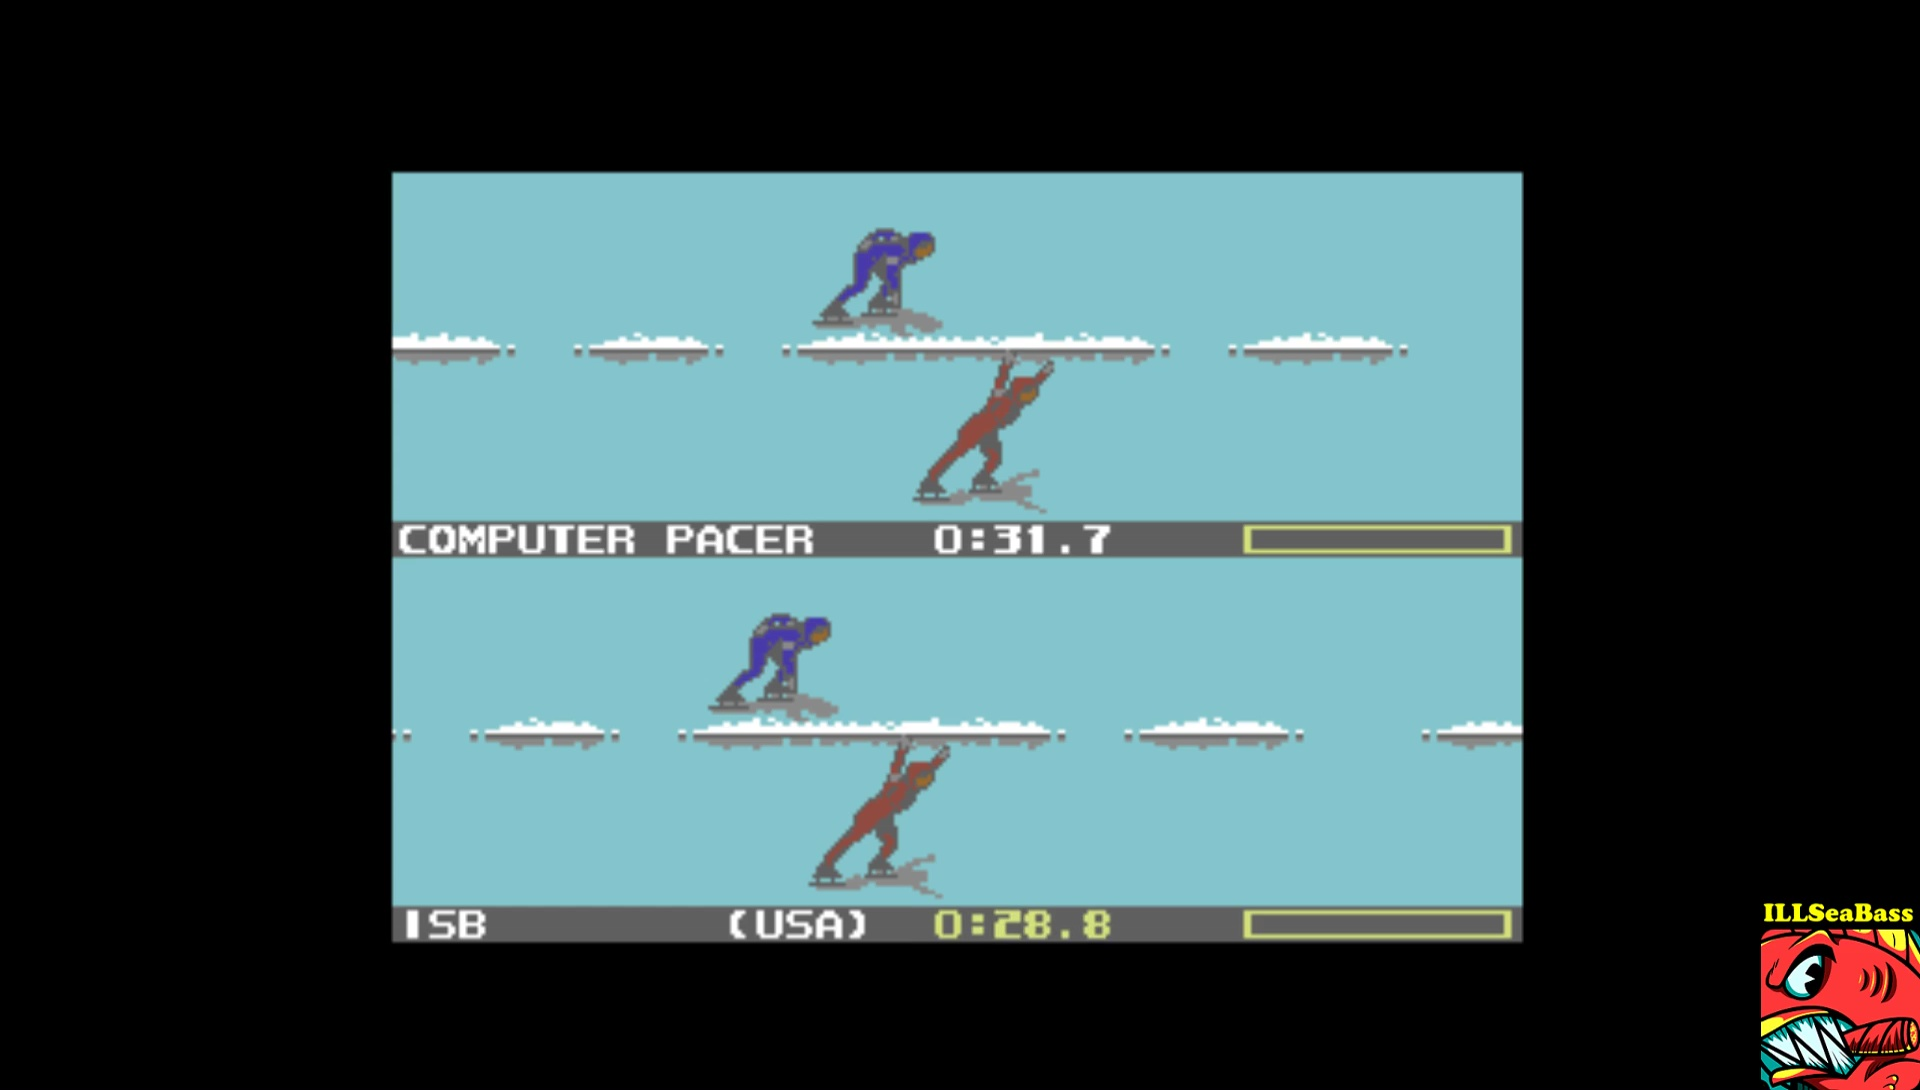 ILLSeaBass: Winter Games: Speed Skating (Commodore 64 Emulated) 0:00:28.8 points on 2017-02-16 20:21:36